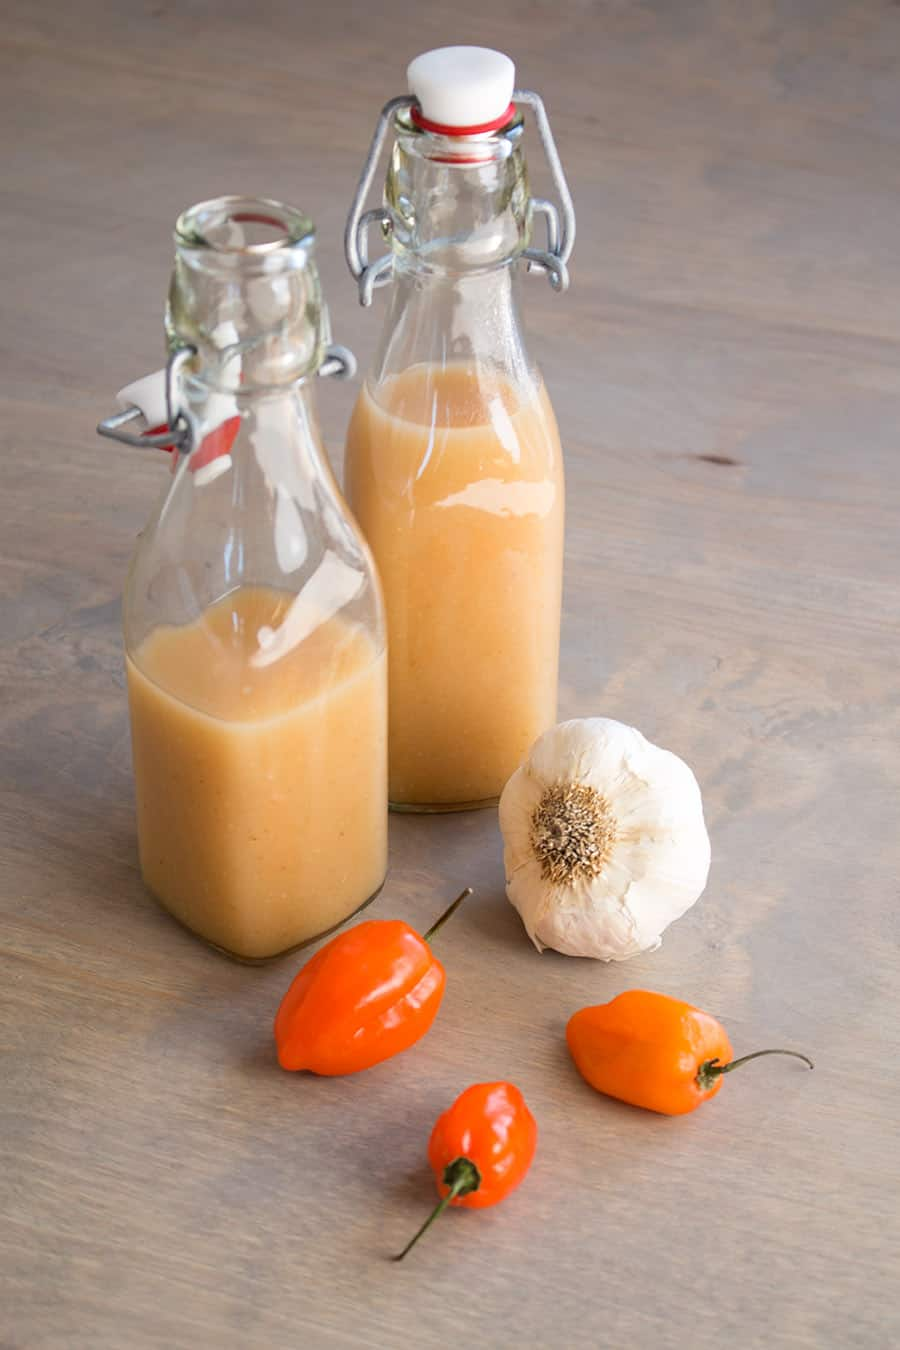 Garlic-Habanero Hot Sauce